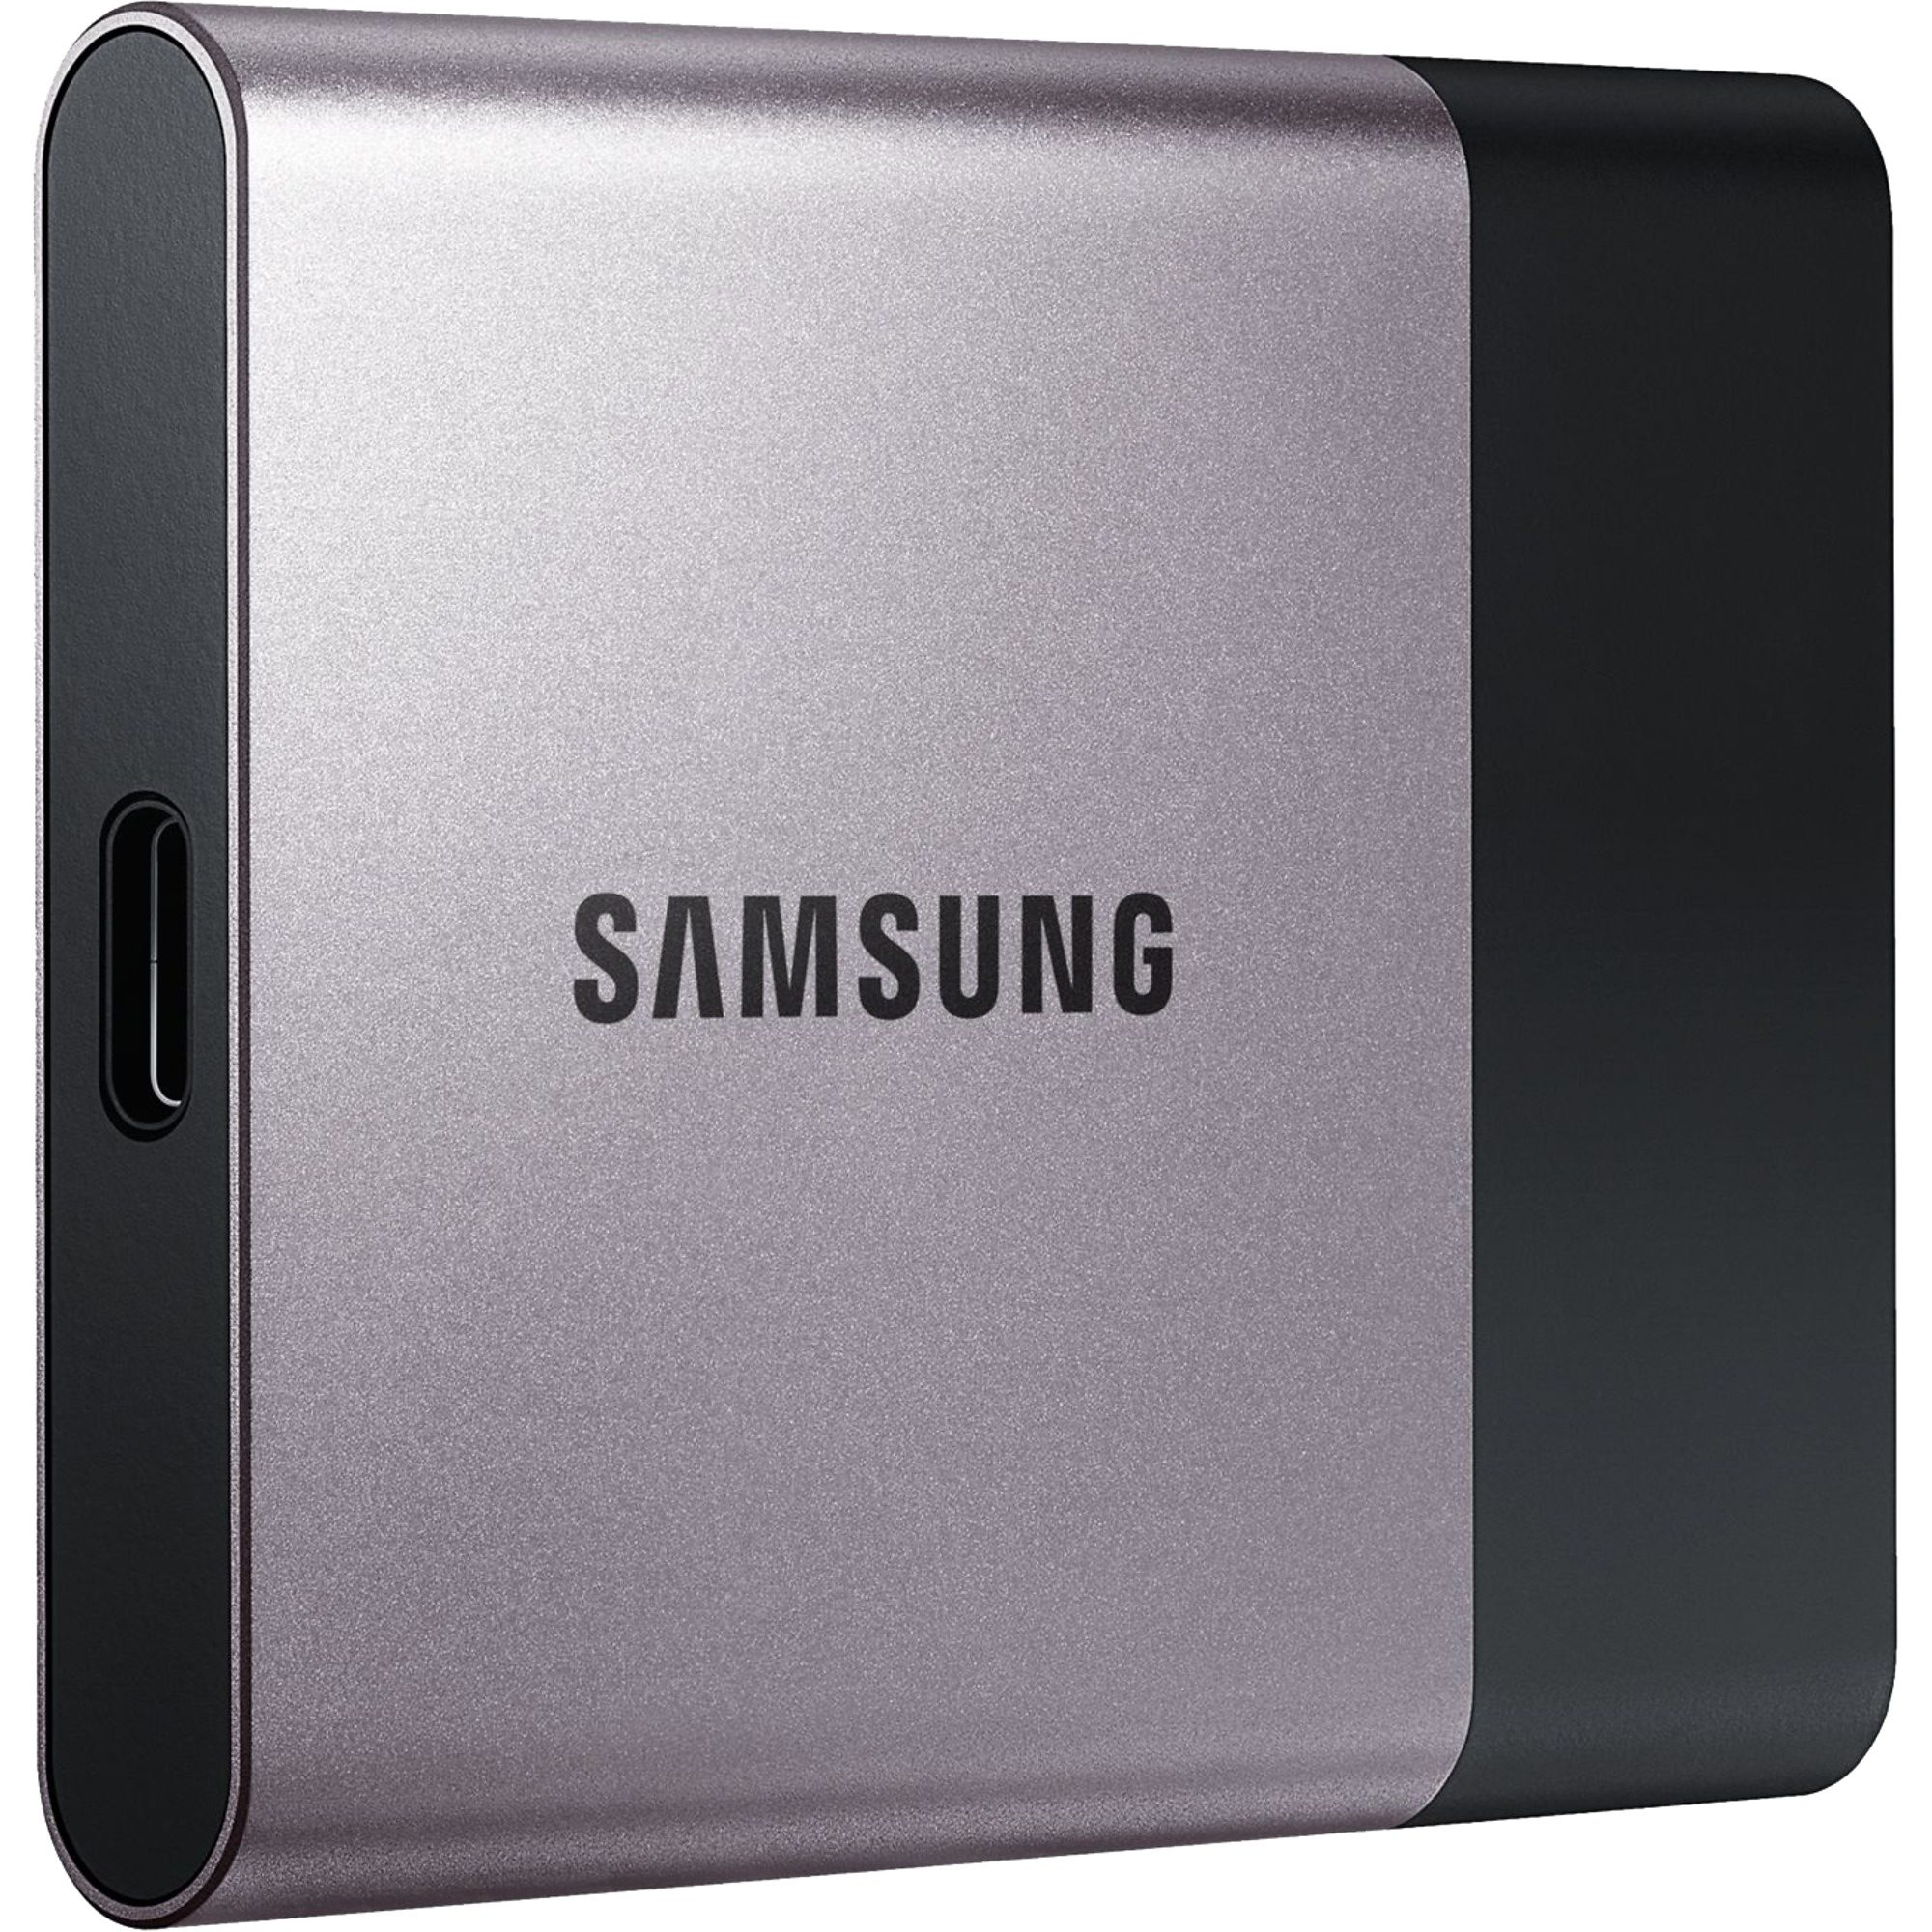 Samsung Solid State Drive »SSD 1TB Portable T3 USB3.1 Gen1«